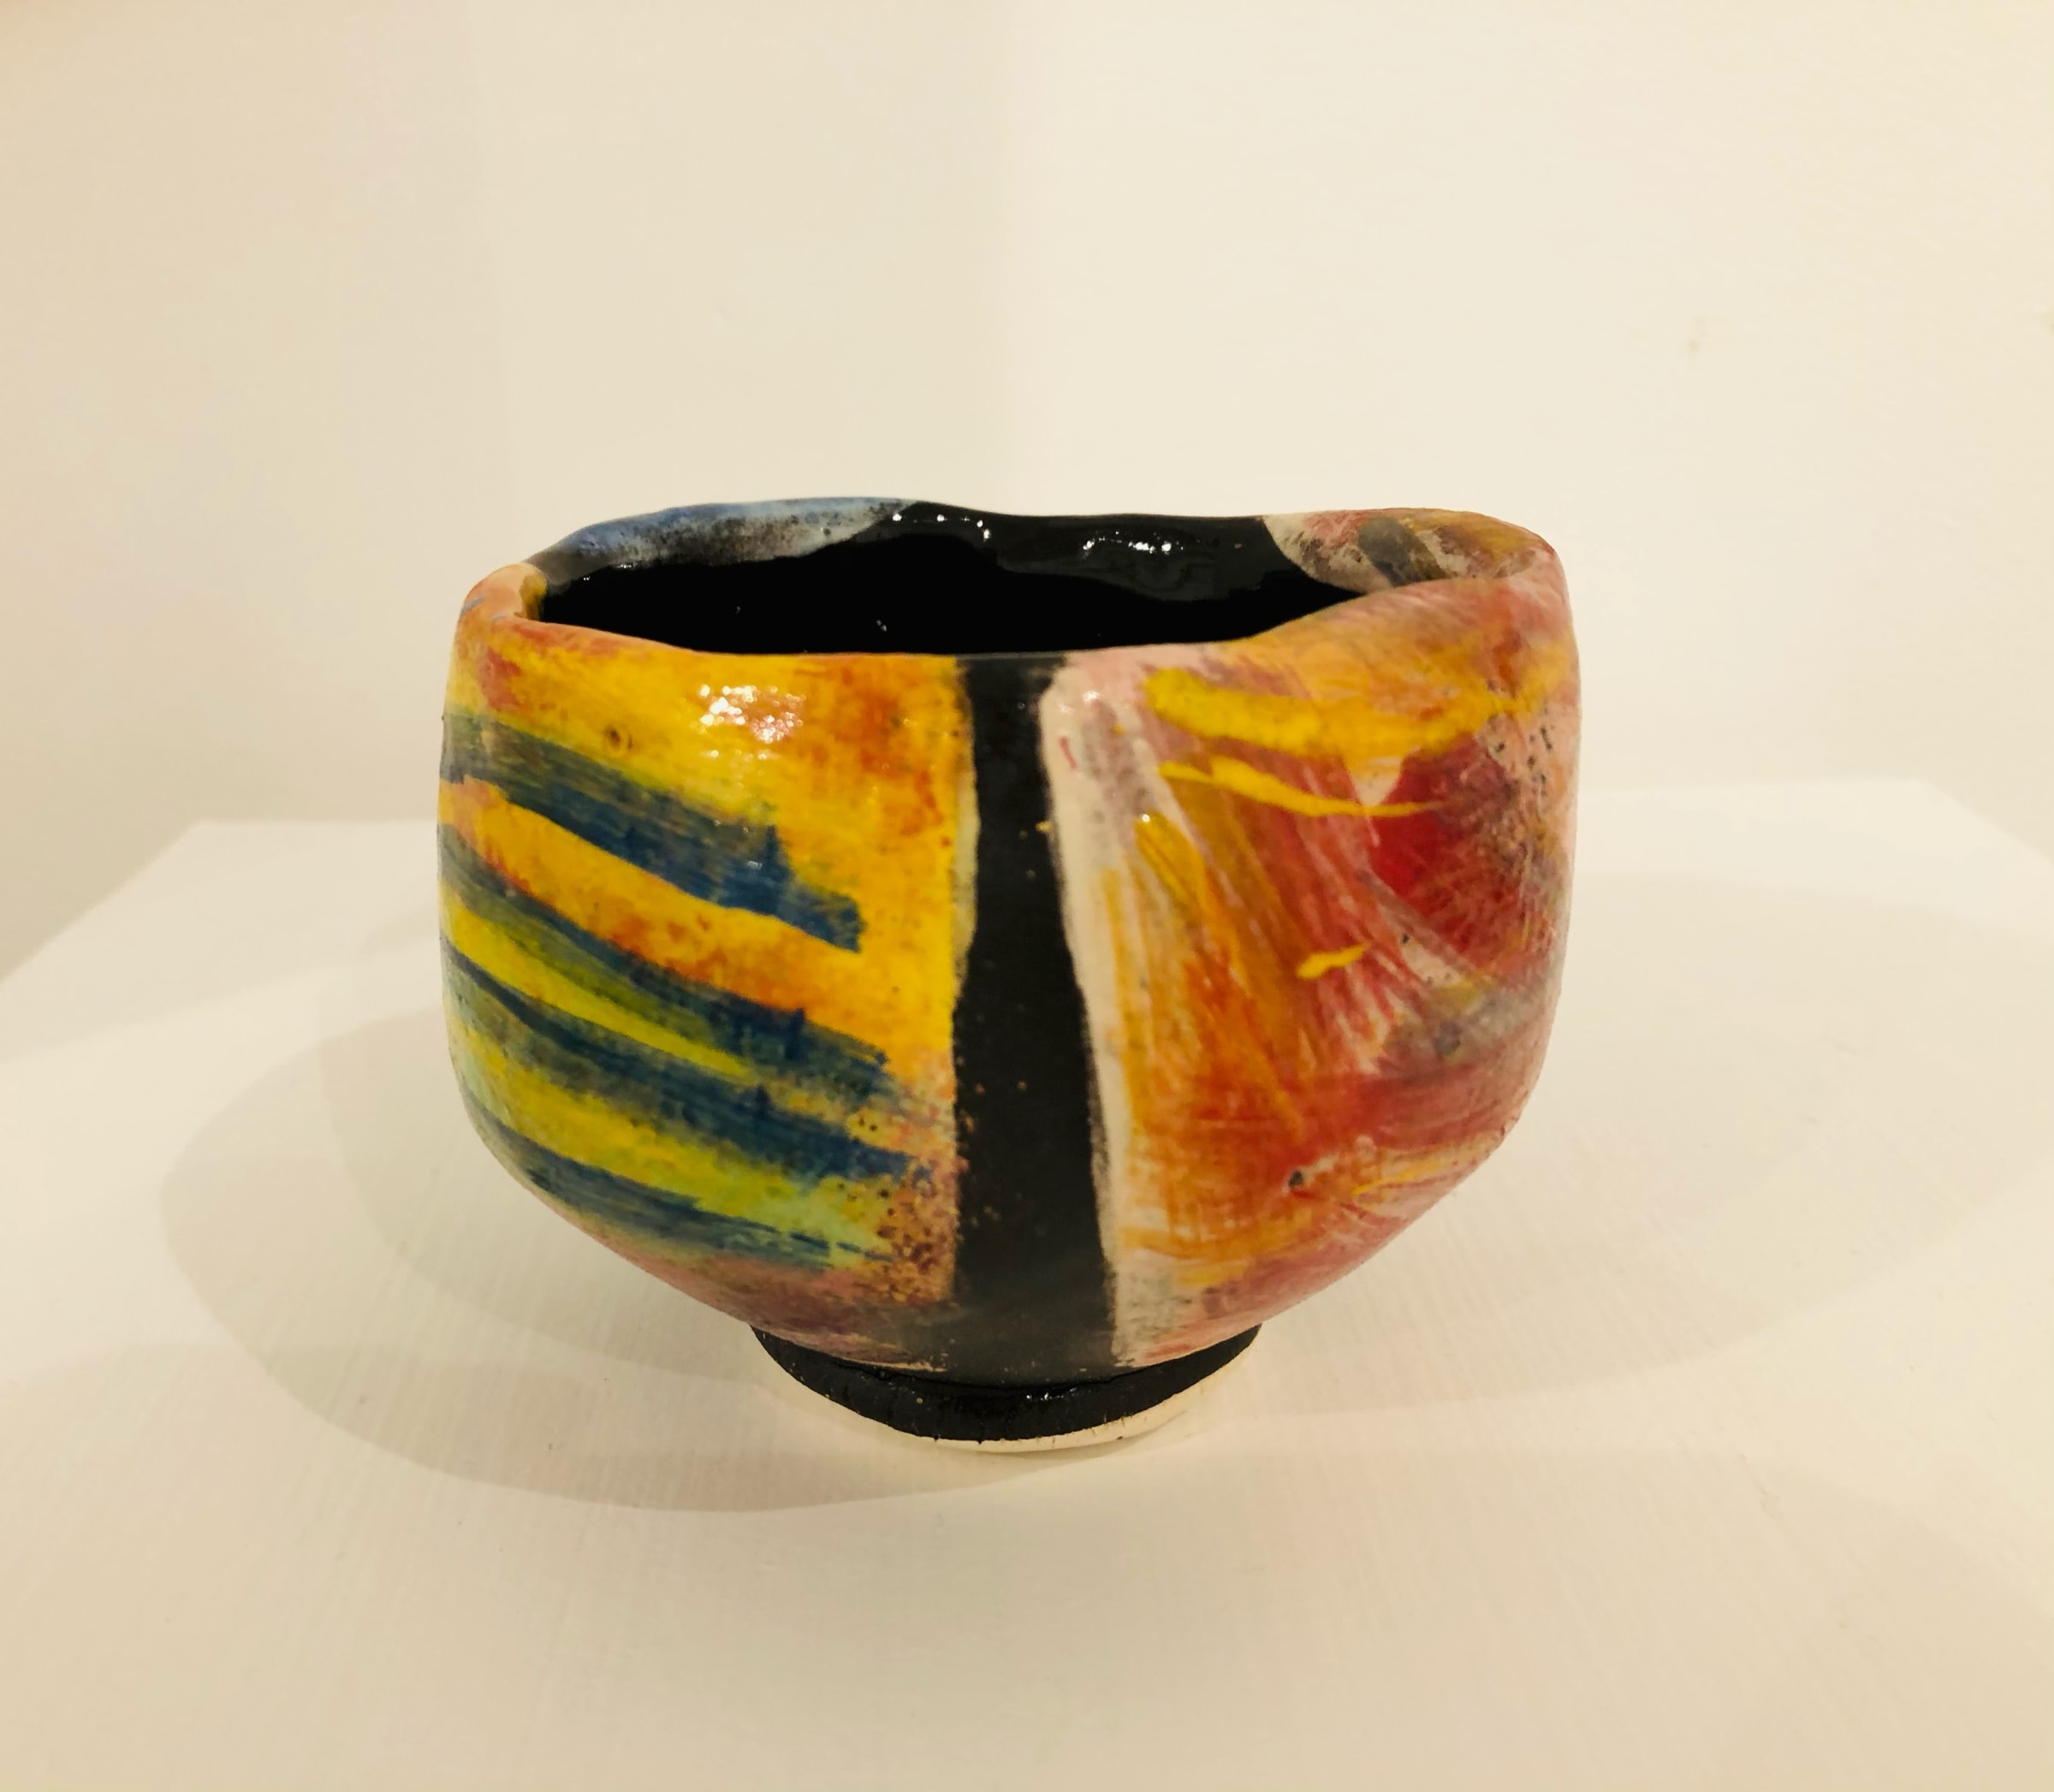 """<span class=""""link fancybox-details-link""""><a href=""""/artists/100-john-pollex/works/7421-john-pollex-tea-bowl-hand-built-2020/"""">View Detail Page</a></span><div class=""""artist""""><strong>John Pollex</strong></div> <div class=""""title""""><em>Tea bowl (hand built)</em>, 2020</div> <div class=""""signed_and_dated"""">impressed with the artist's seal mark 'JP'</div> <div class=""""medium"""">white earthenware decorated with coloured slips</div> <div class=""""dimensions"""">height. 8.5 cm x diameter. 10 cm</div><div class=""""copyright_line"""">Copyright The Artist</div>"""